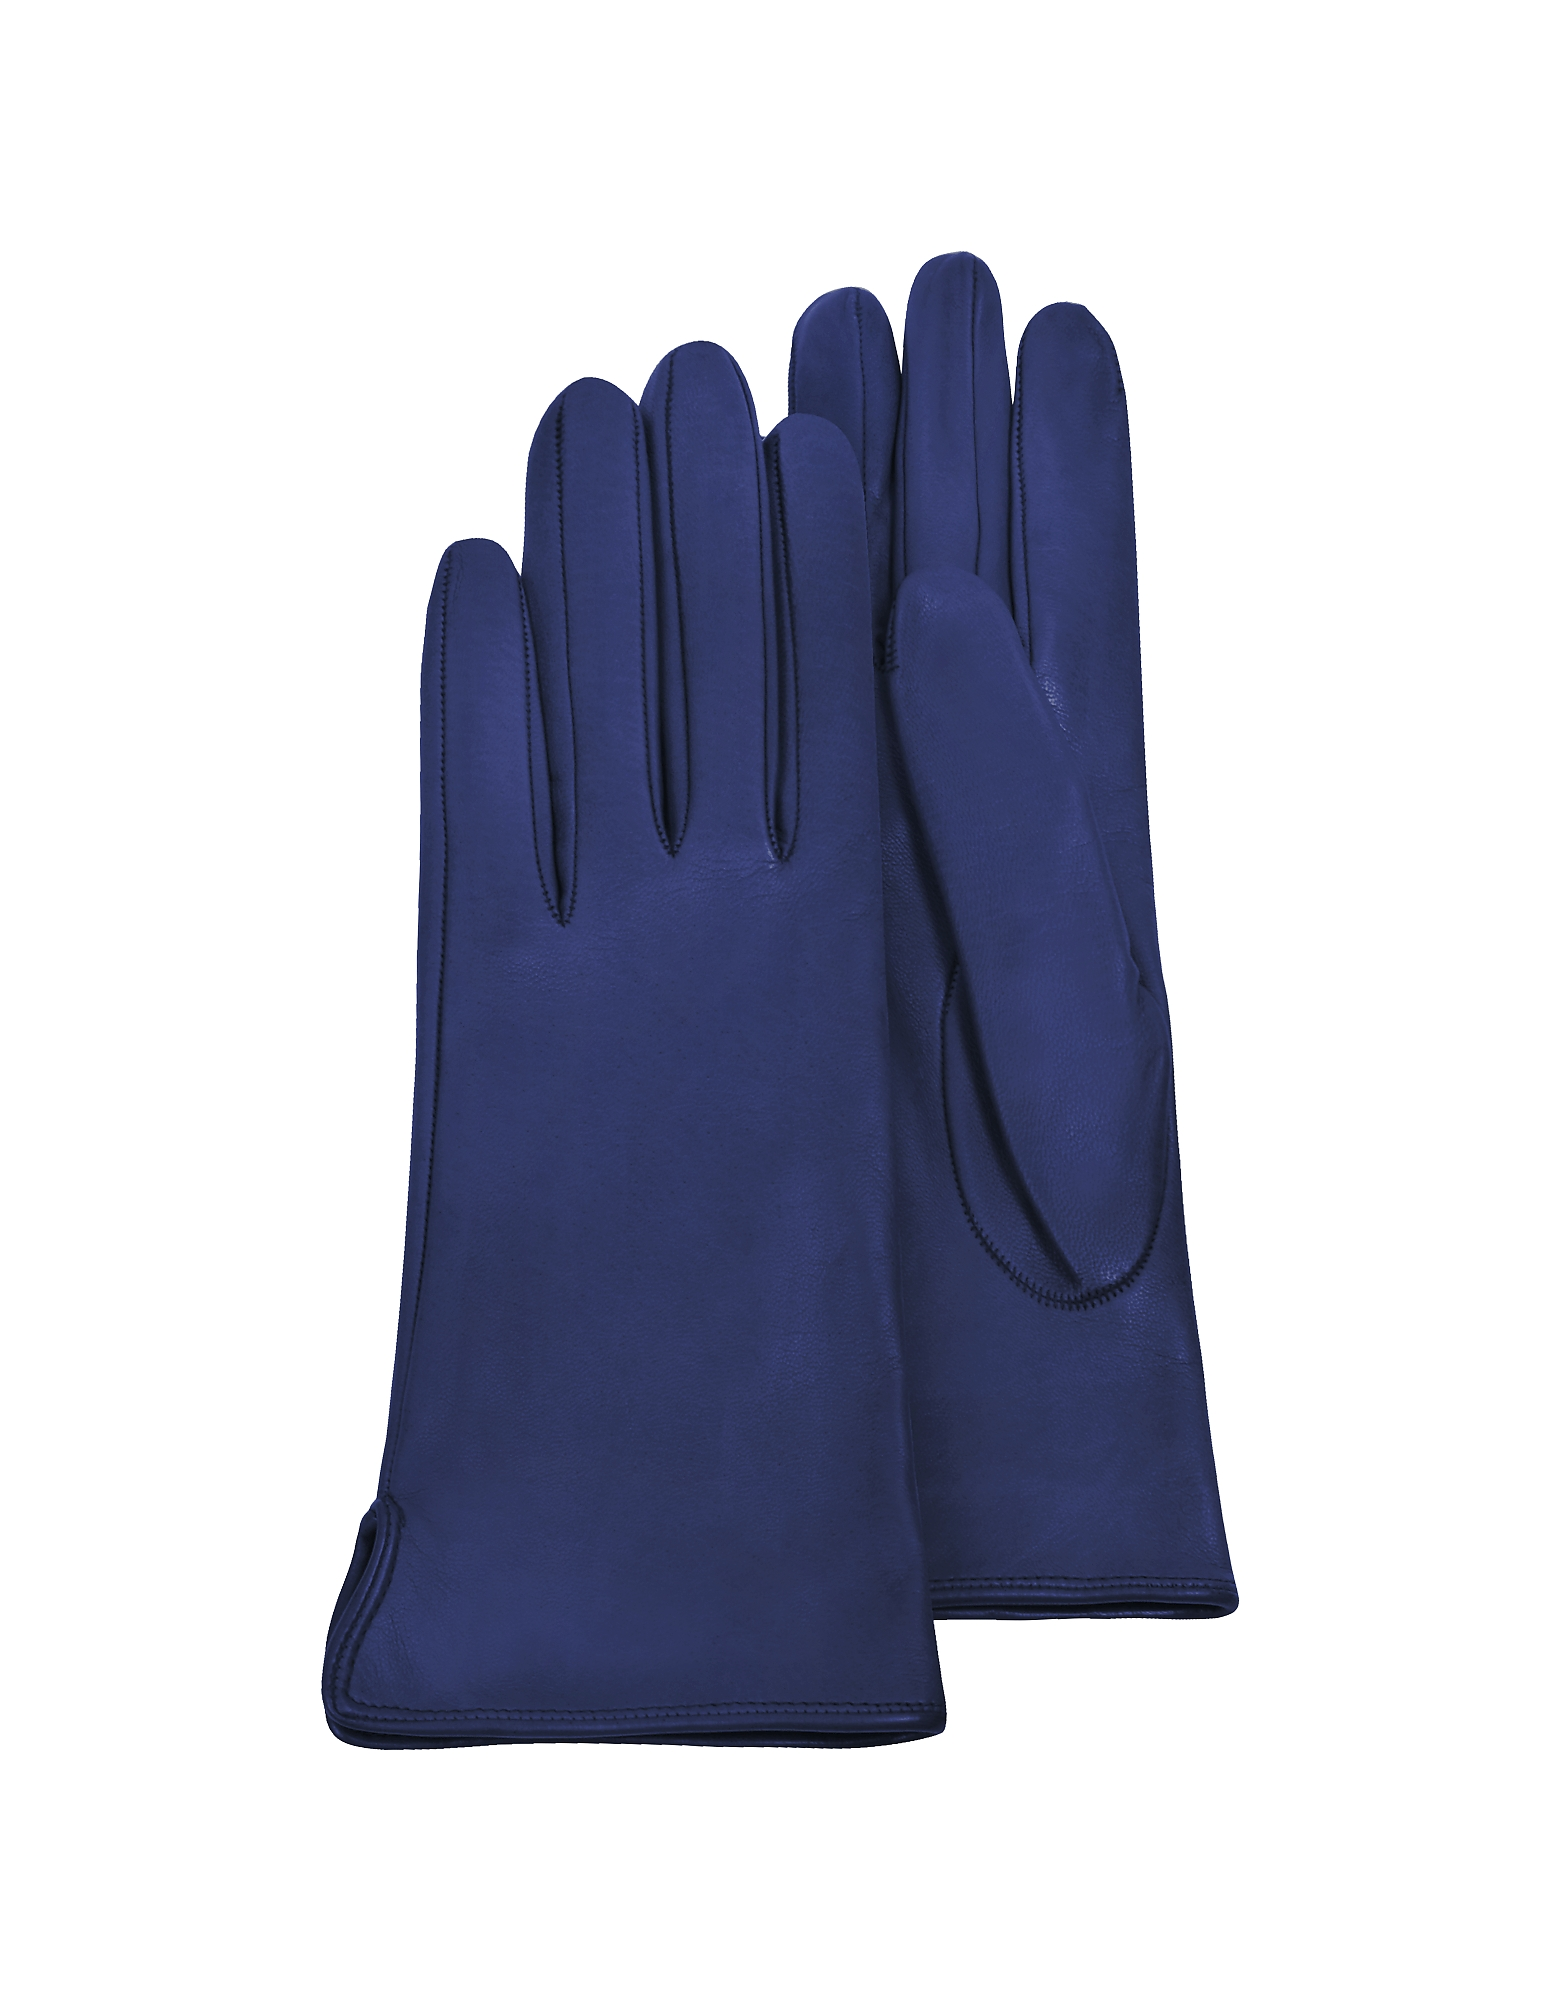 Forzieri Women's Gloves, Women's Bright Blue Calf Leather Gloves w/ Silk Lining